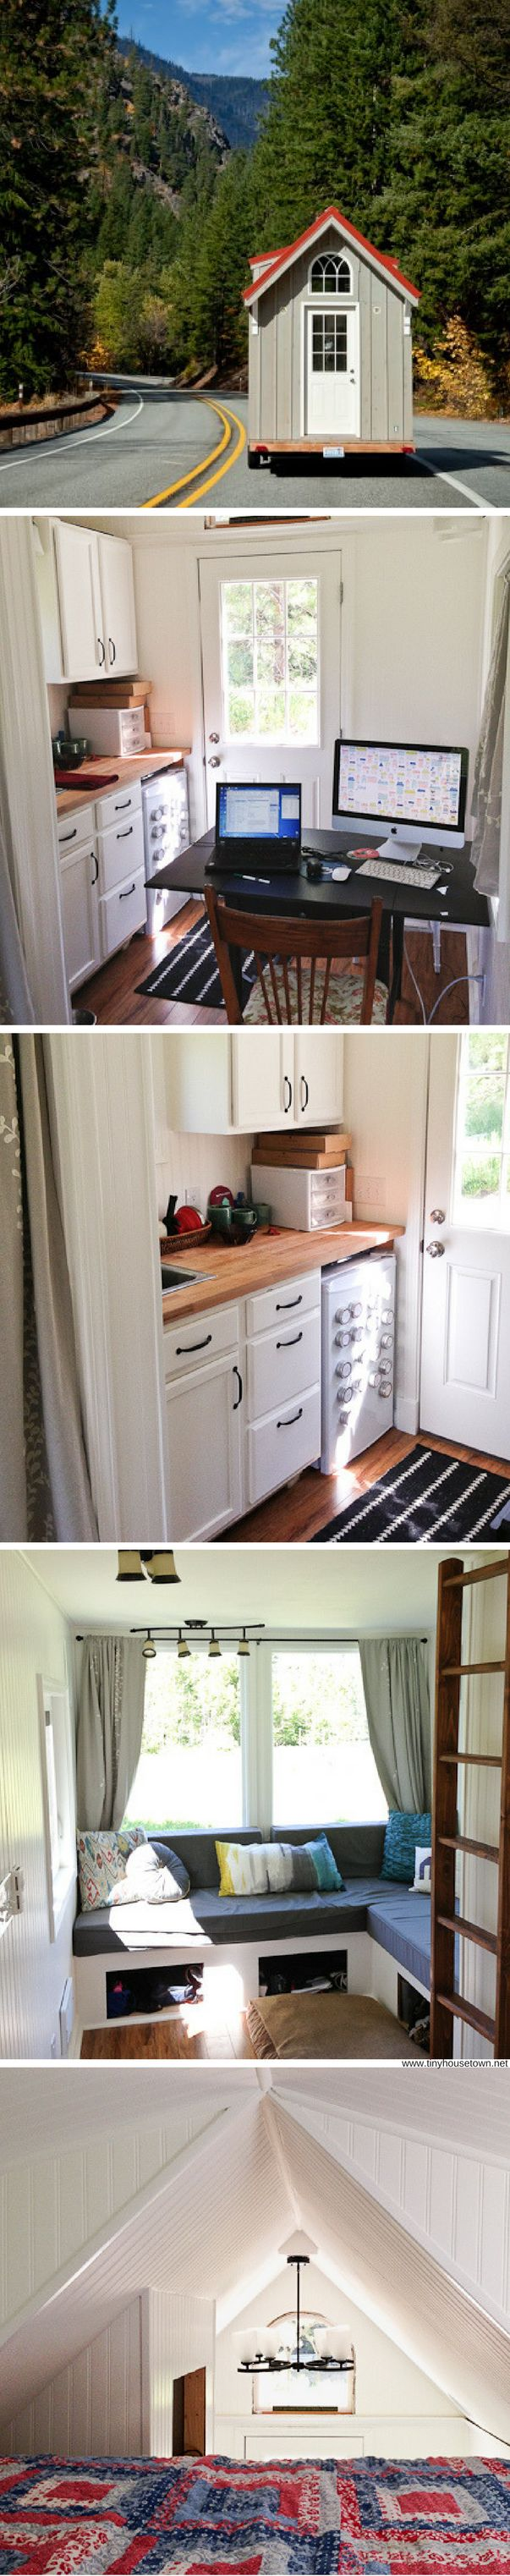 The Almost Glamping tiny house